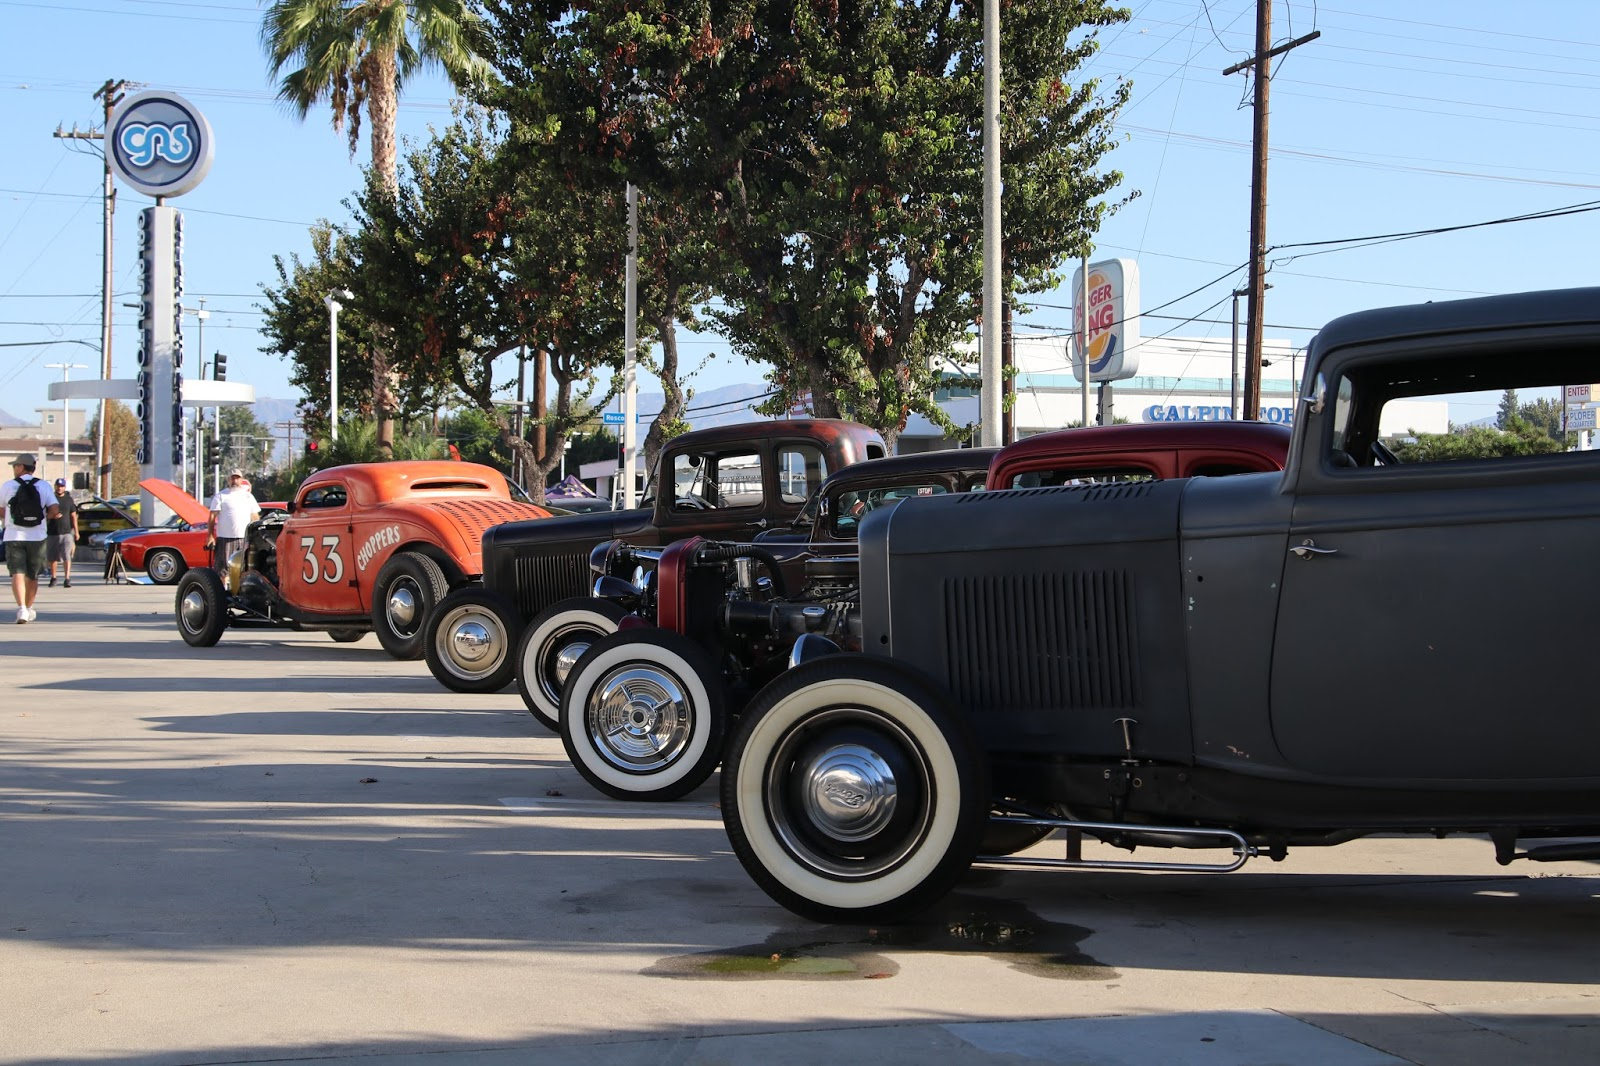 Covering Classic Cars Th Annual Galpin Ford Car Show In Van Nuys - Galpin ford car show